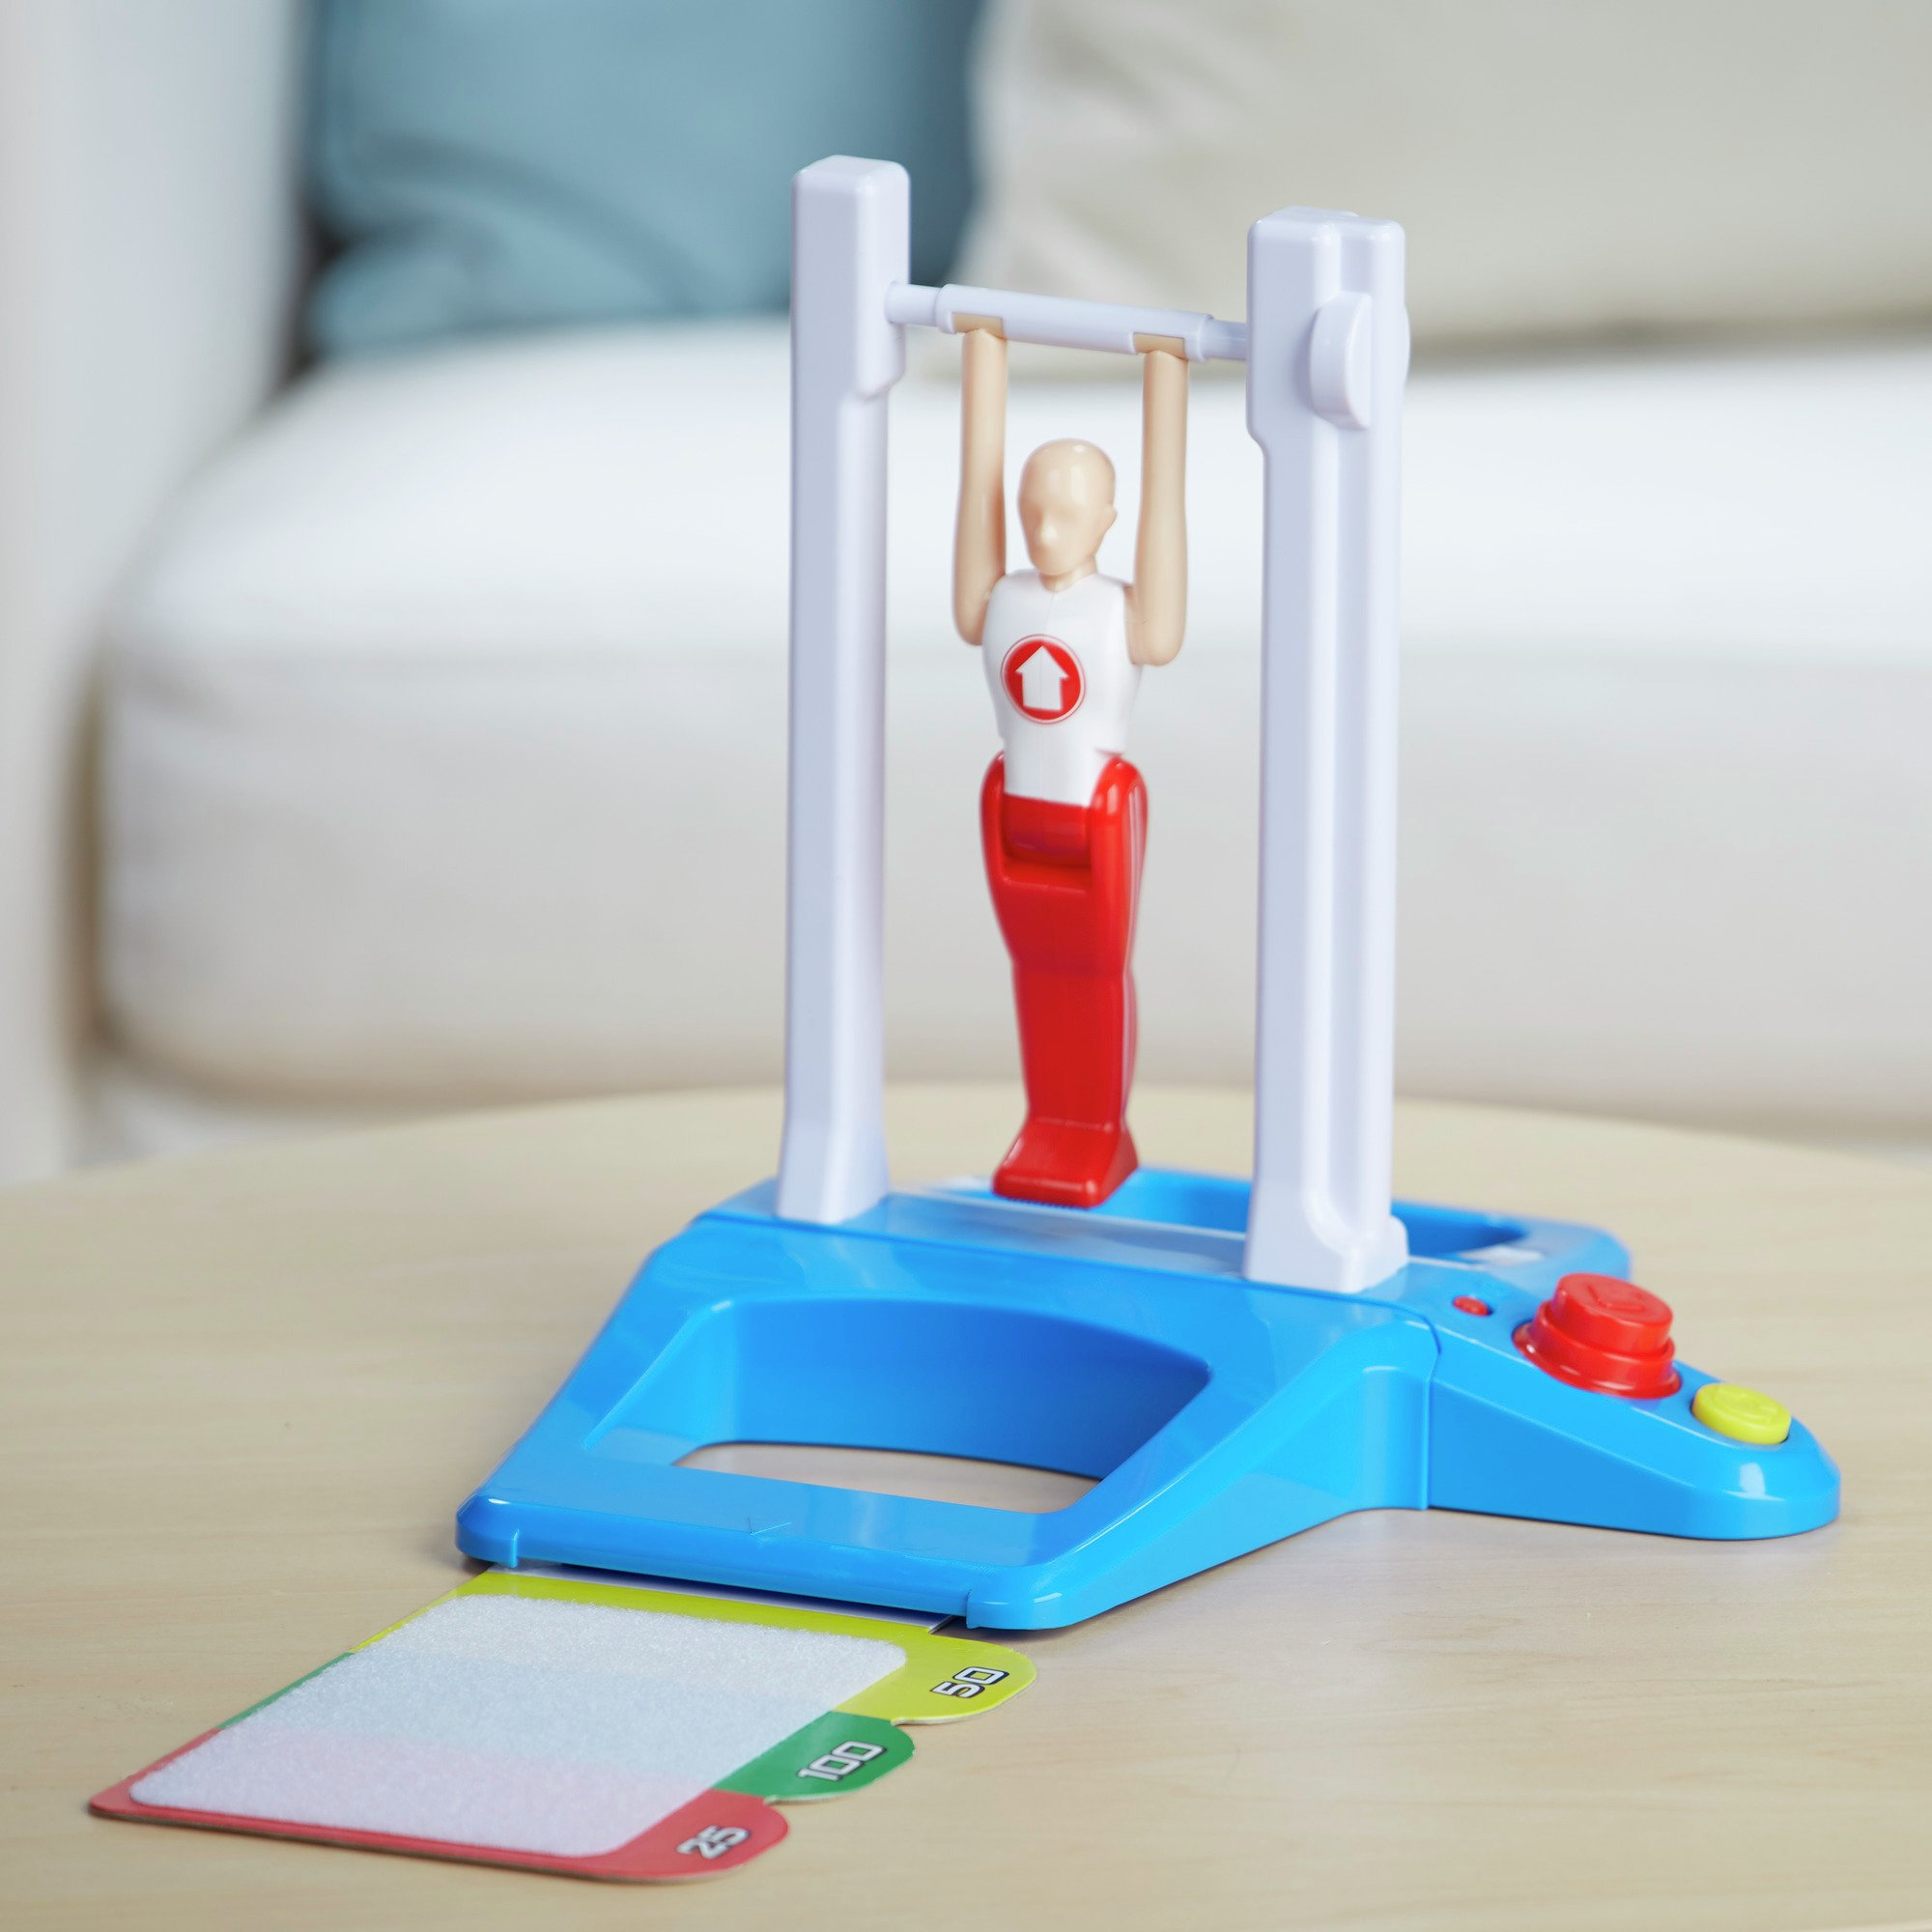 Image of Fantastic Gymnastics Game From Hasbro Gaming